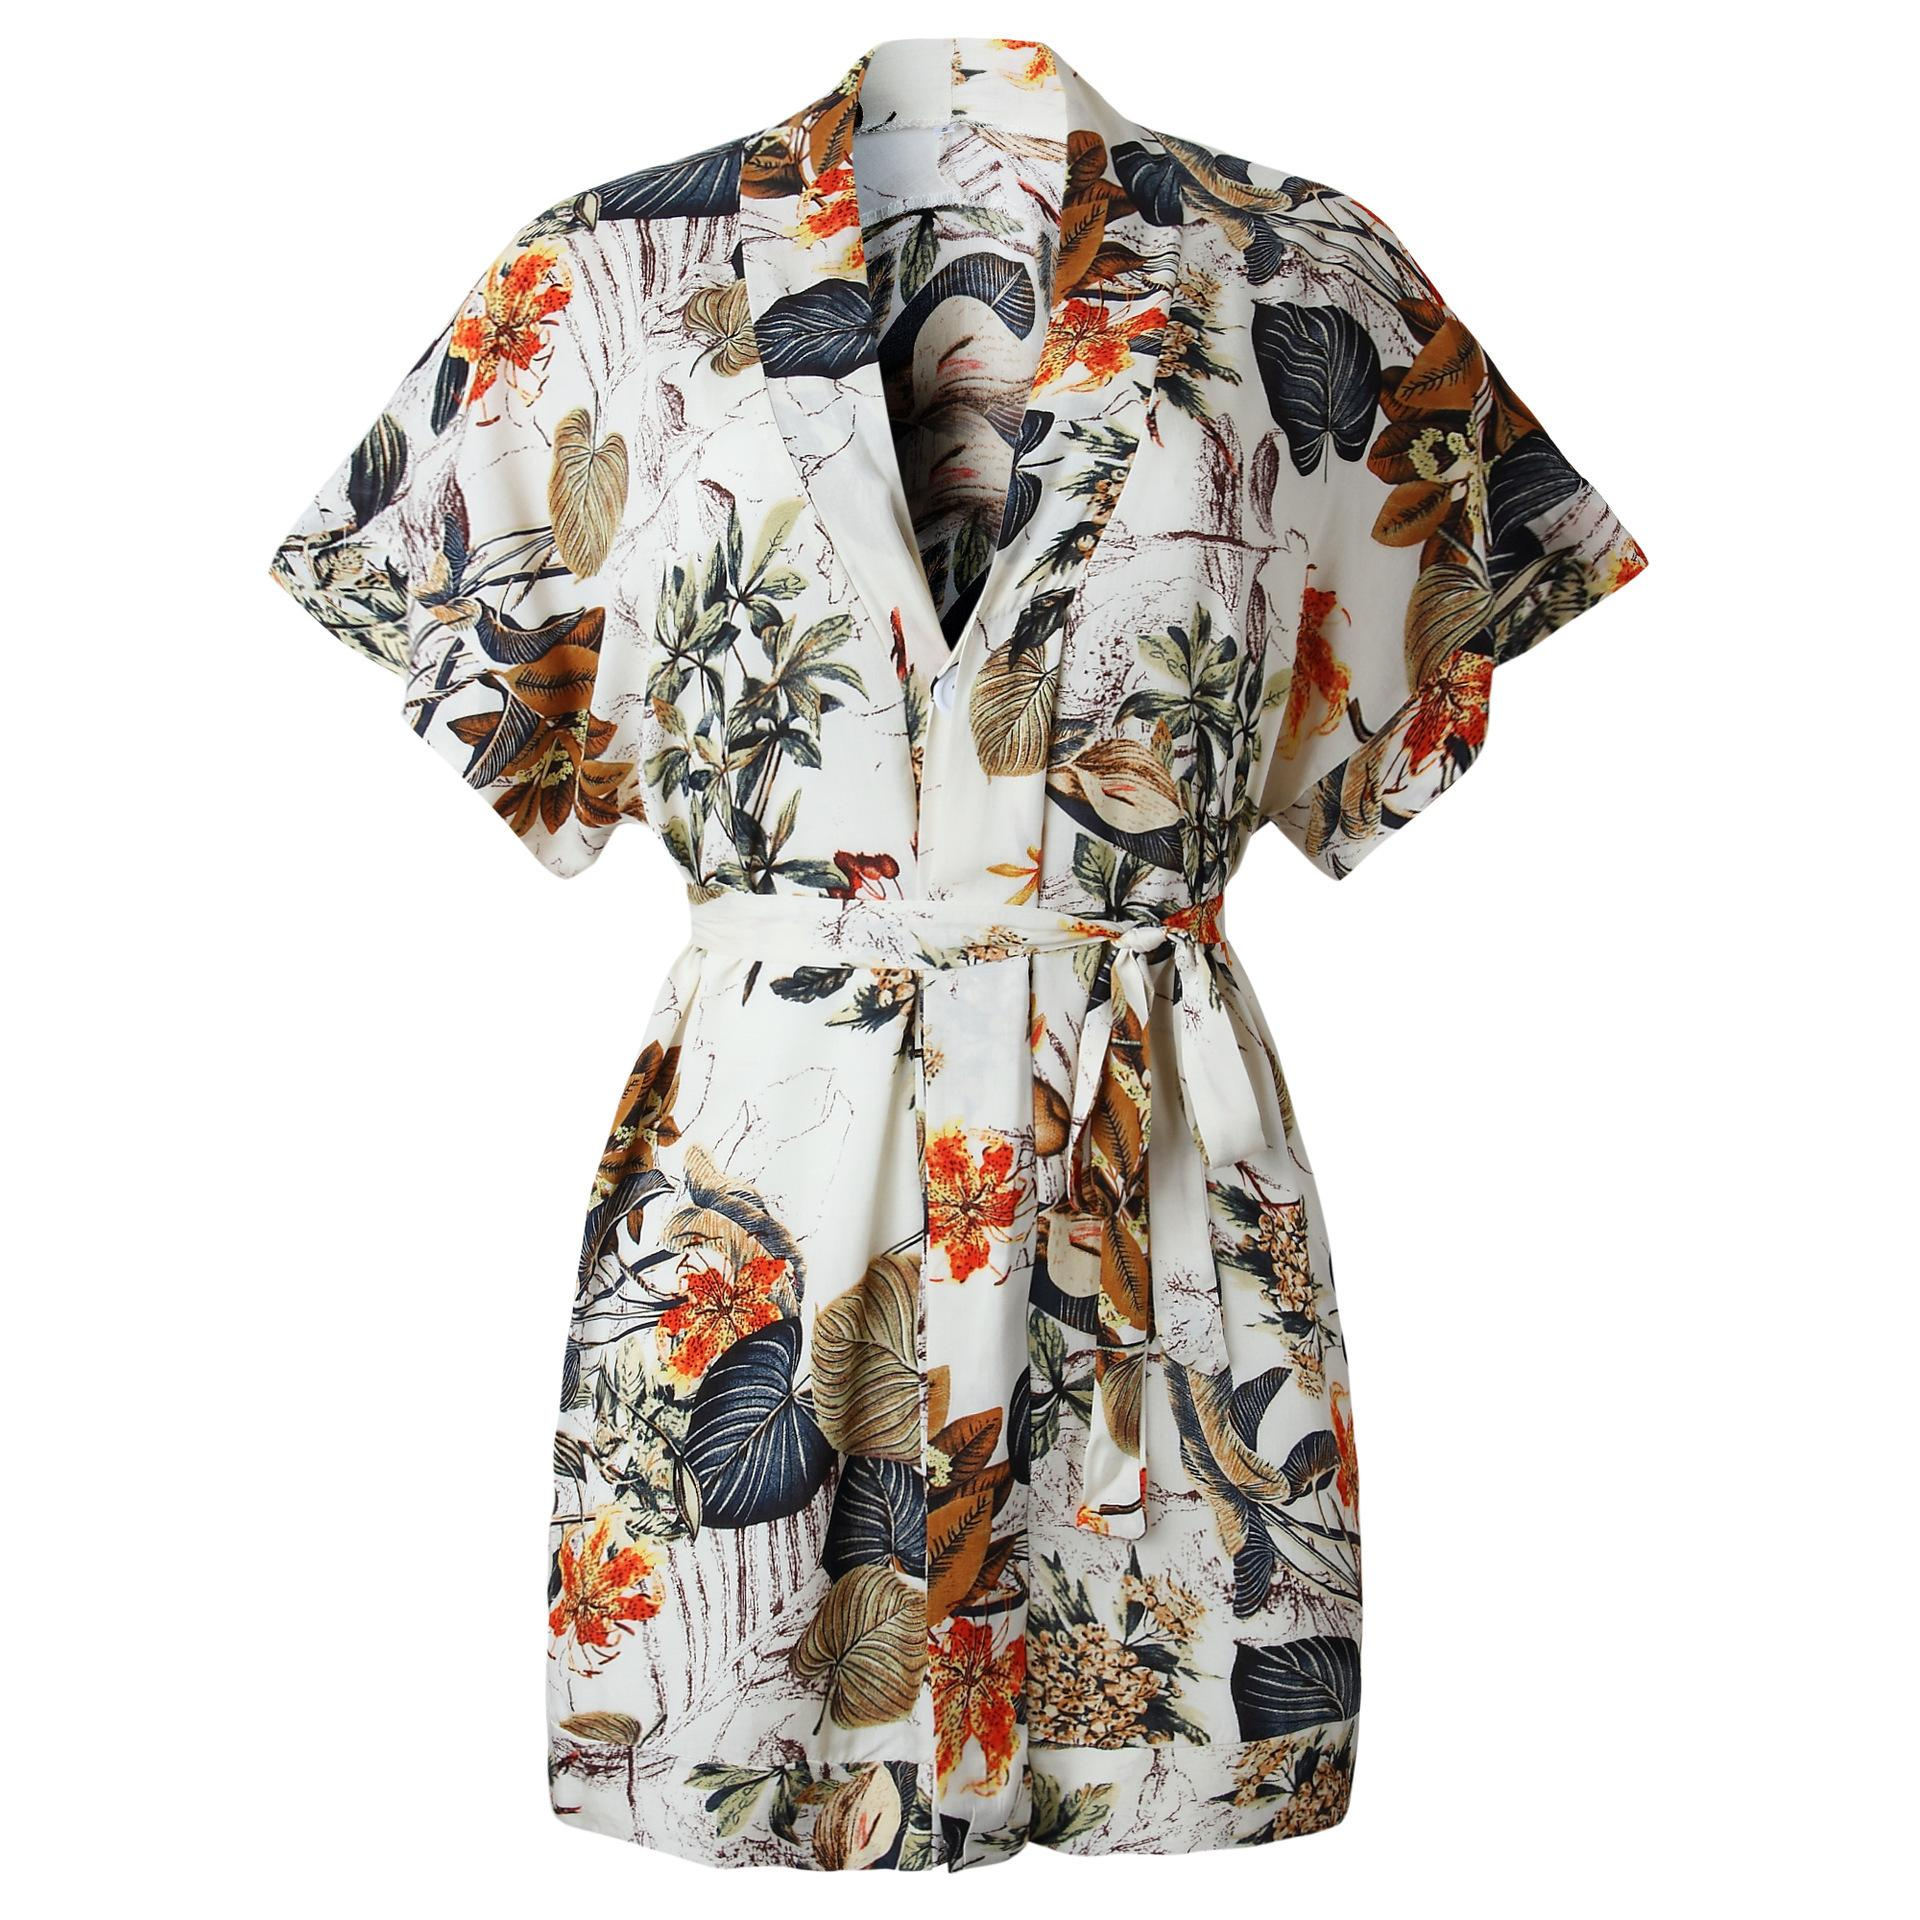 665654c9b6acc 2019 Slim Wrap Lace Up Spring Summer Boho The Dress Women Sexy V Neck Floral  Print Ladies Mini Casual Beach Wear Tunic Summer Flower Dress Party Dress  Blue ...